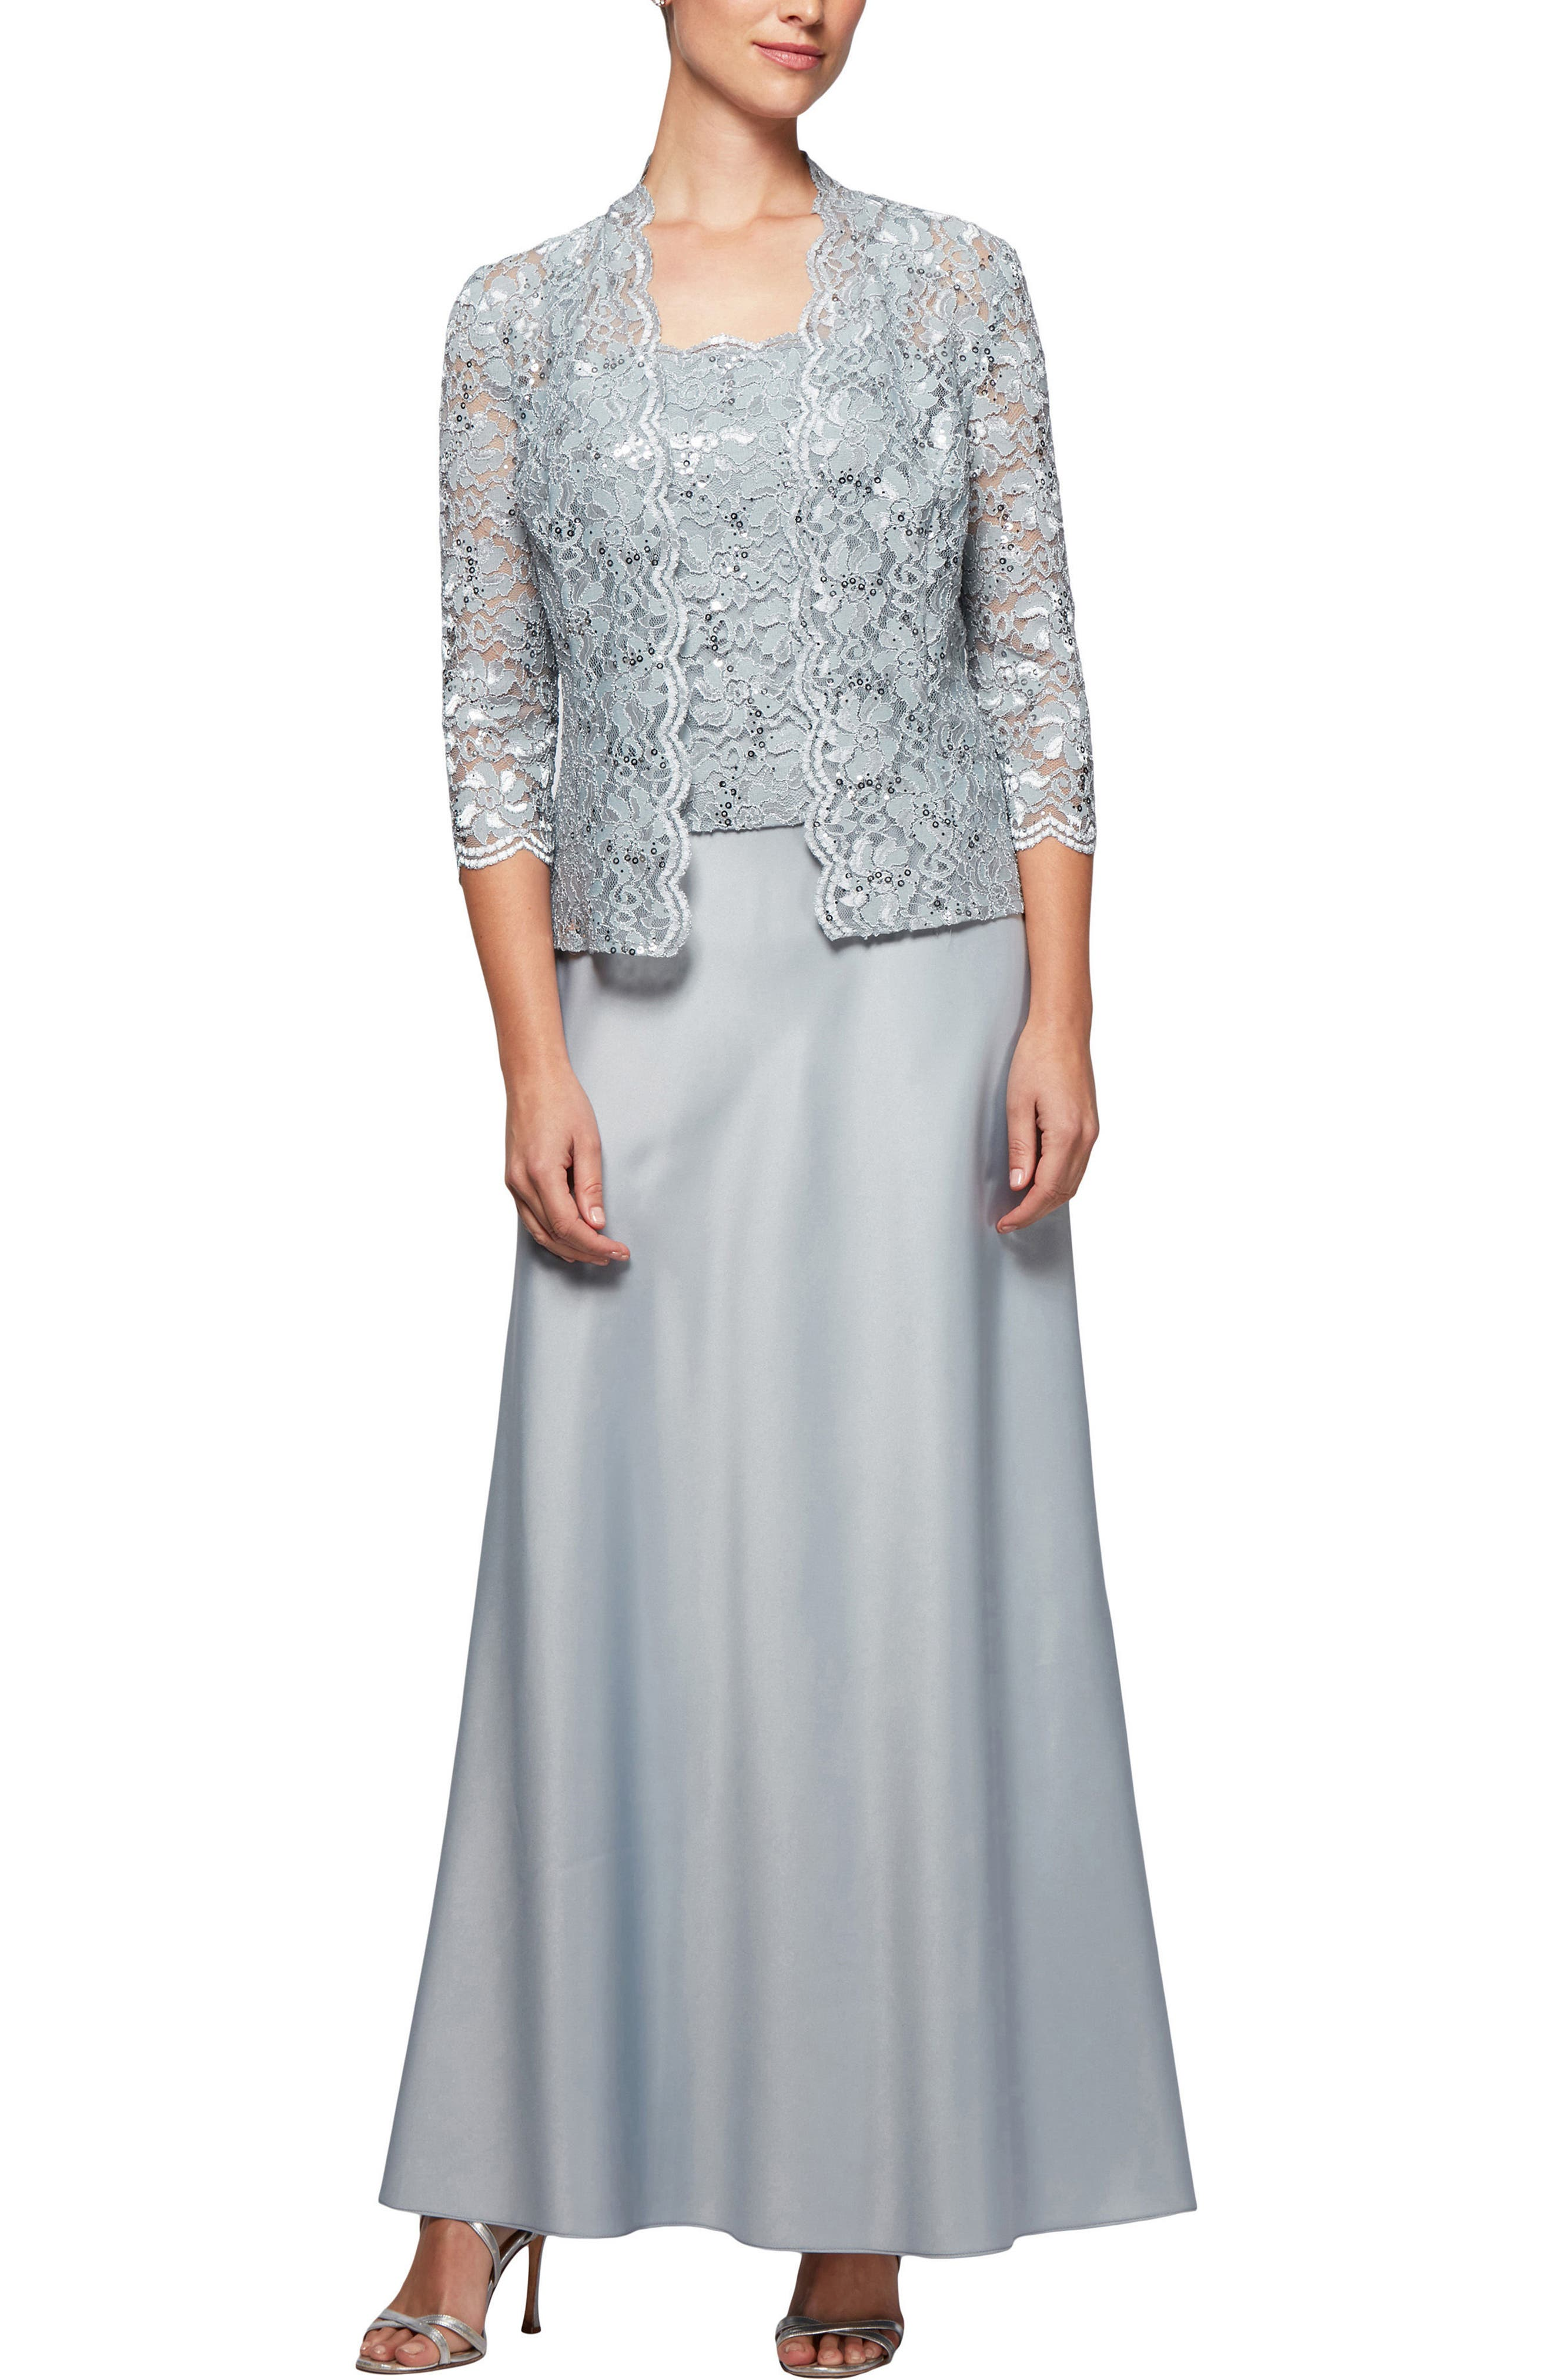 Main Image - Alex Evenings Scalloped Lace Gown with Jacket